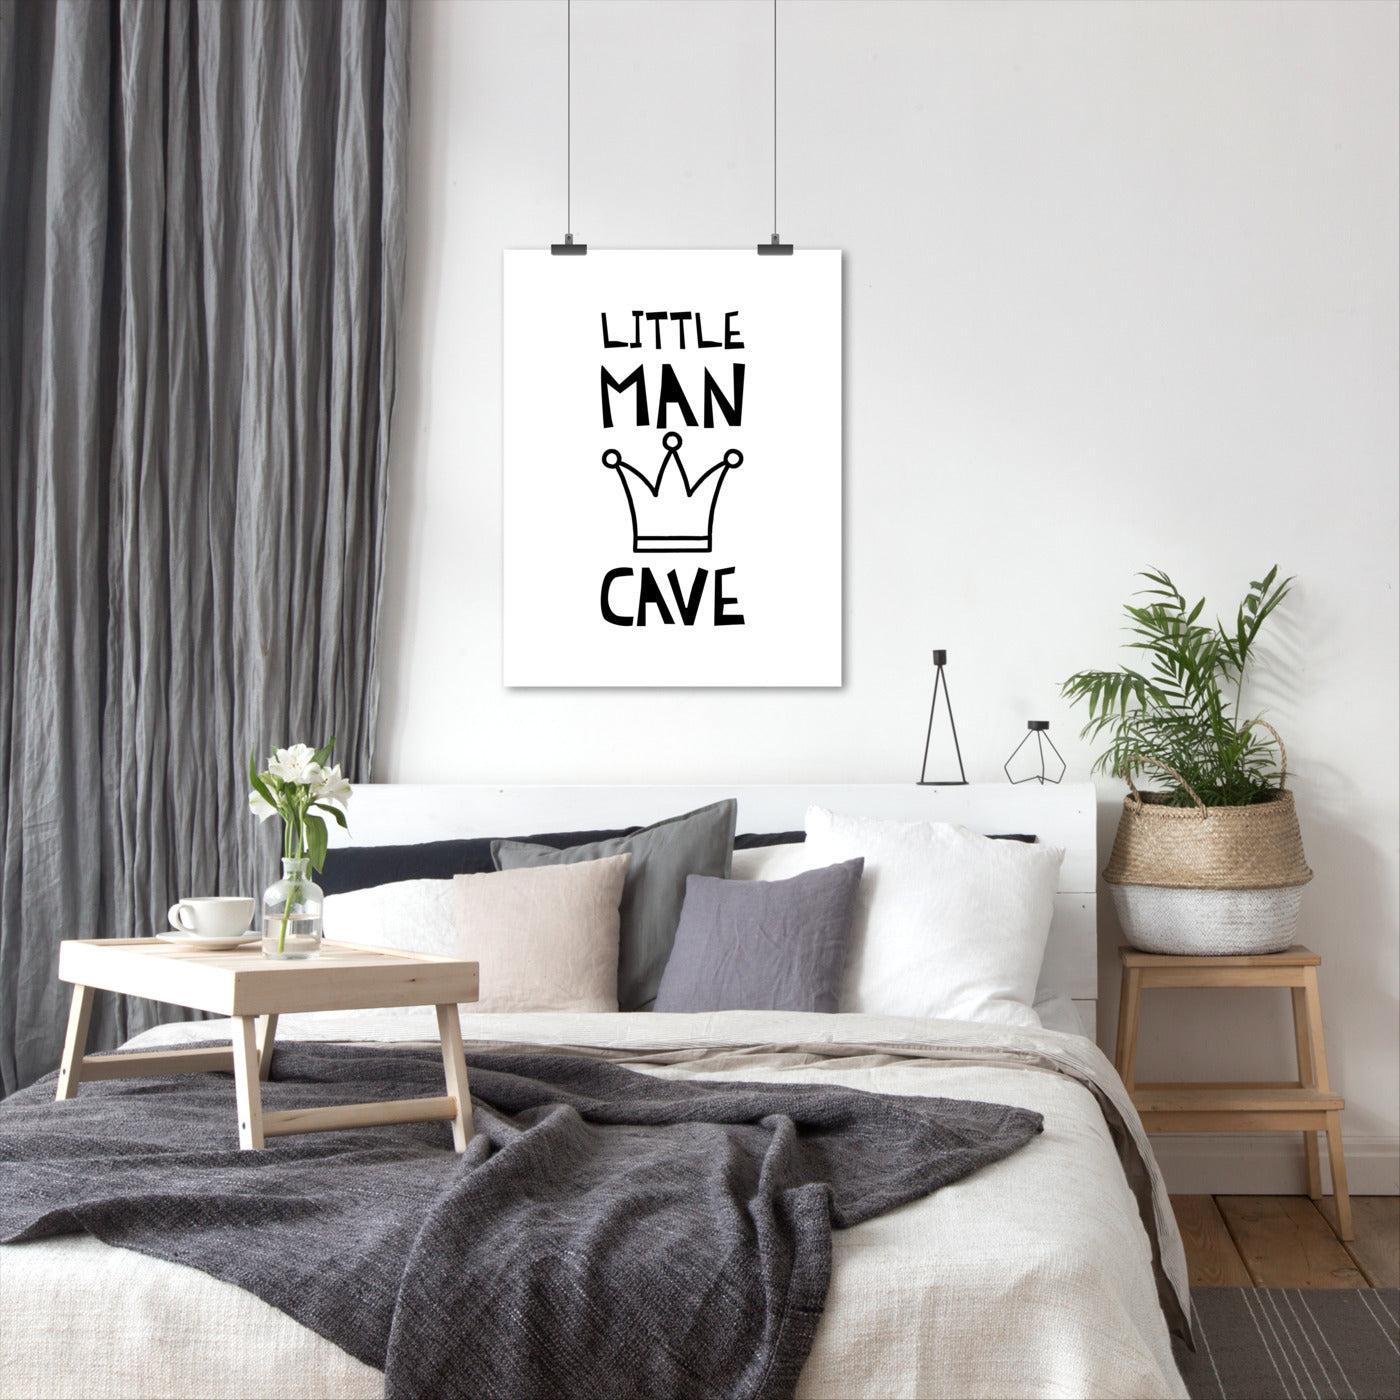 Little Man Cave by Kate Shephard - Art Print - Americanflat